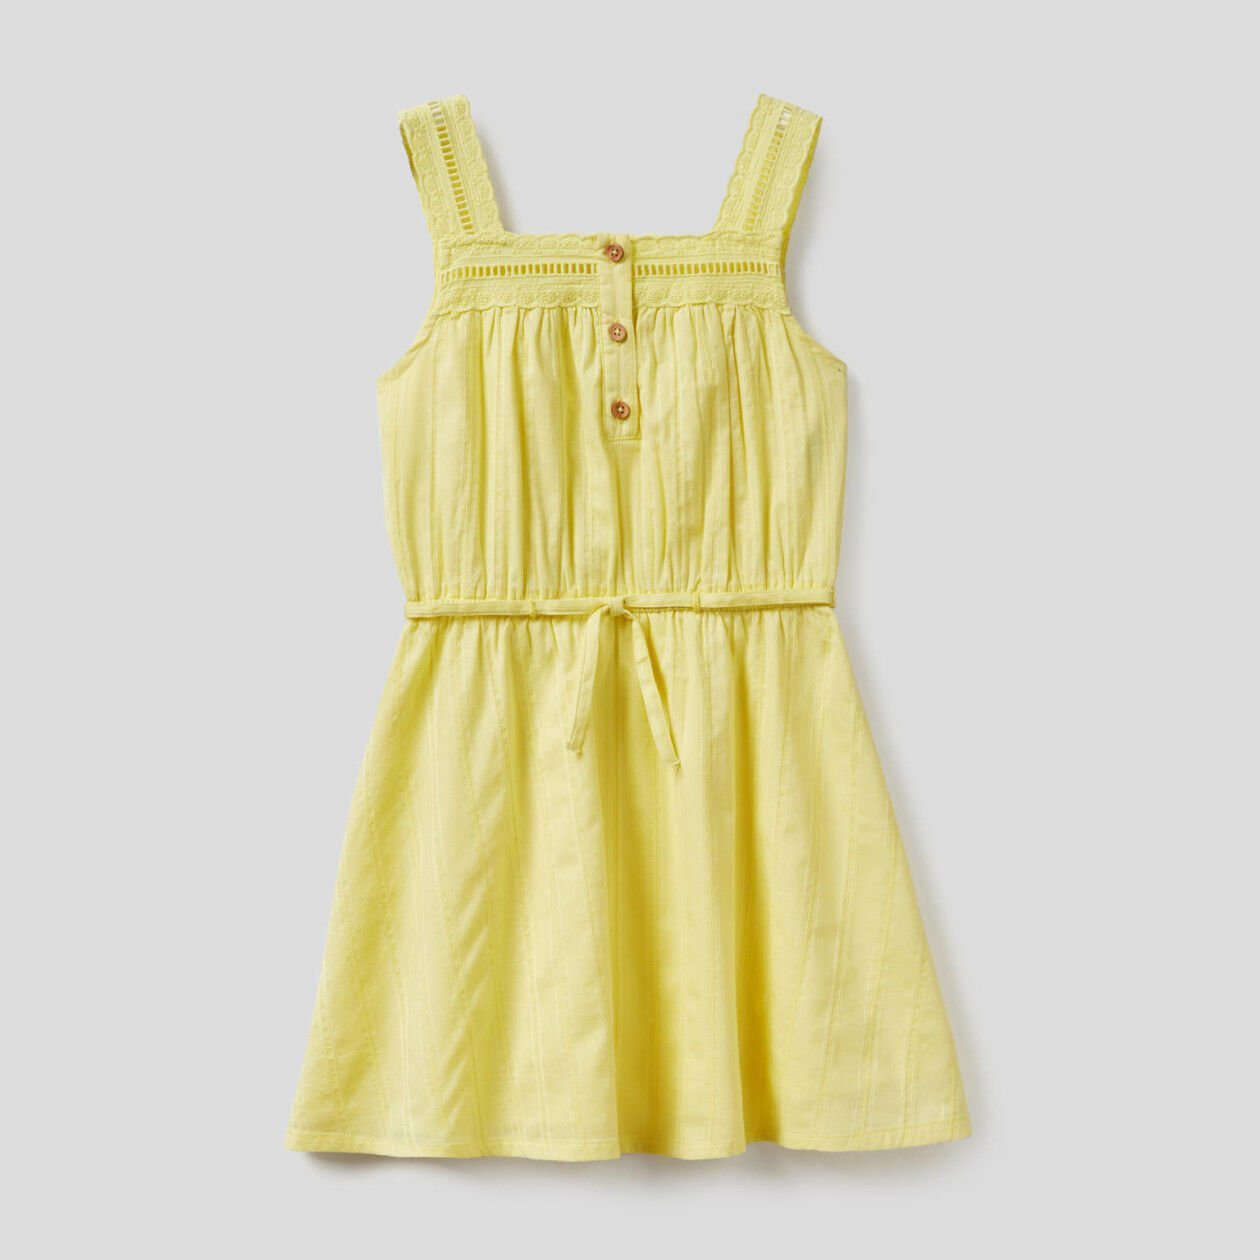 100% cotton lightweight dress